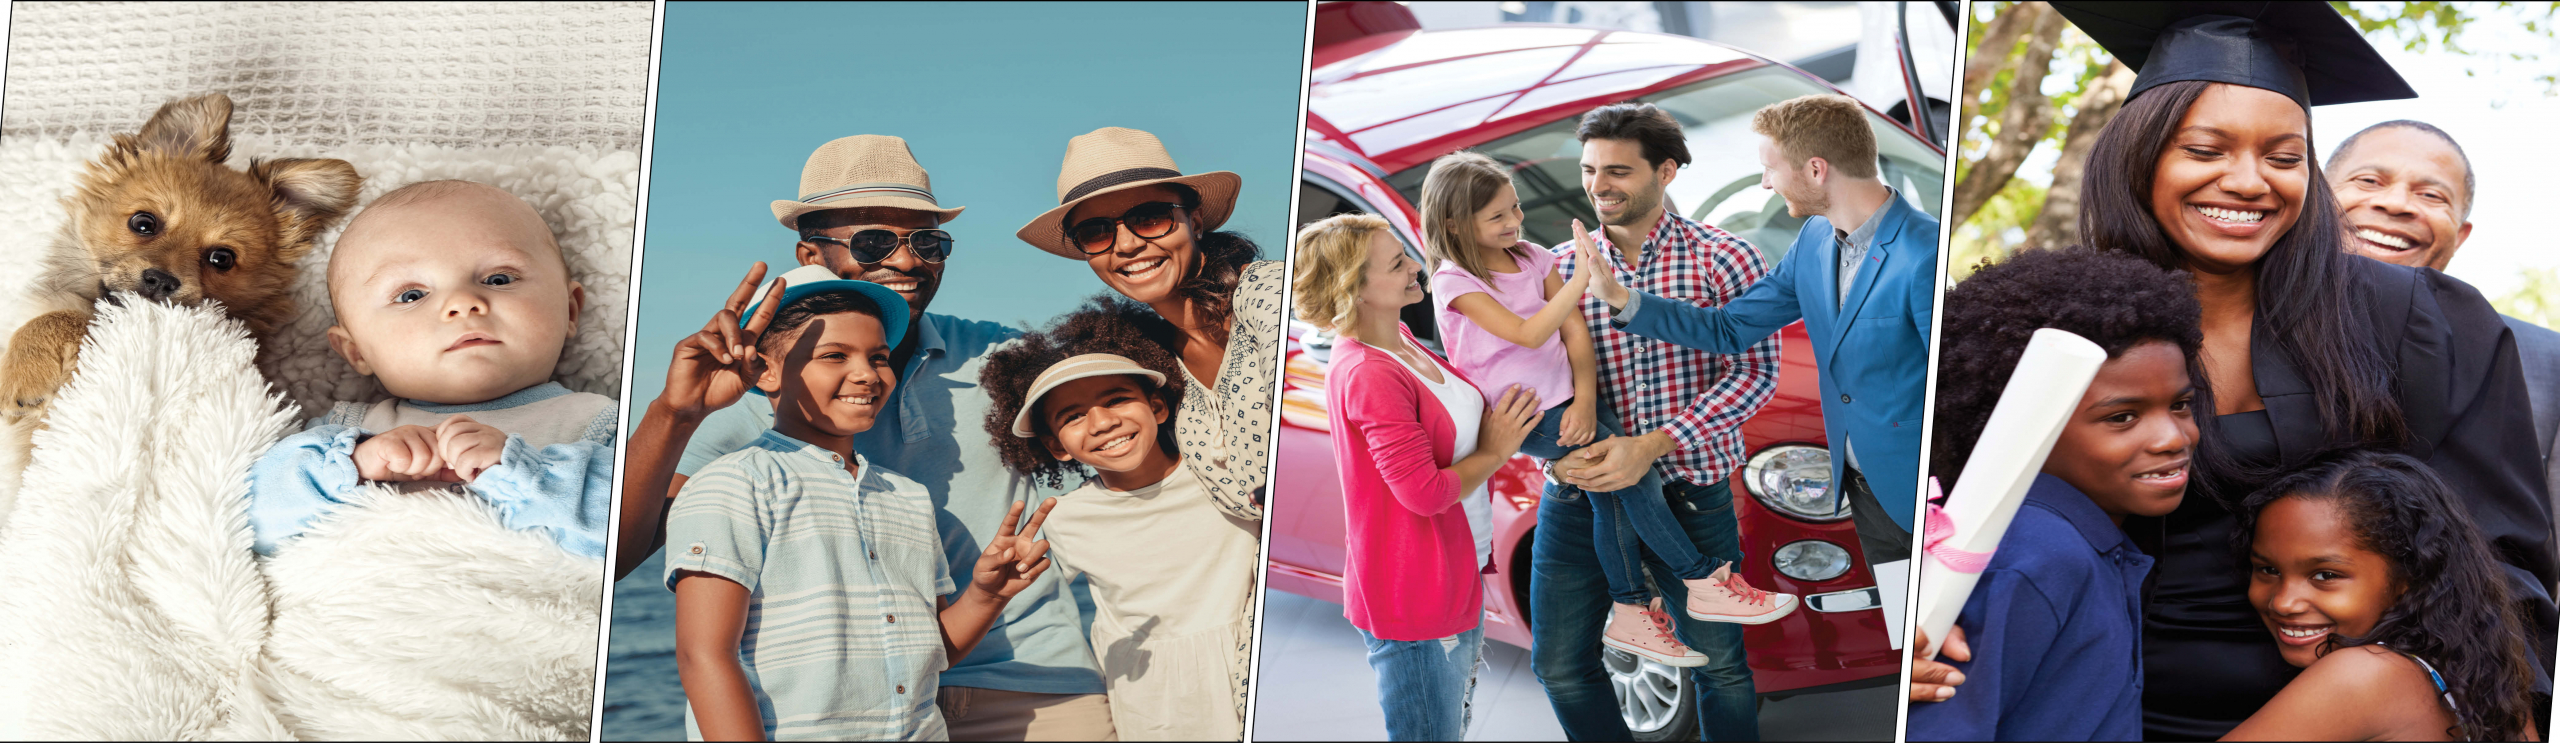 JPG - Happy Family pictures, baby with dog, family on beach, family buying car, graduation picture